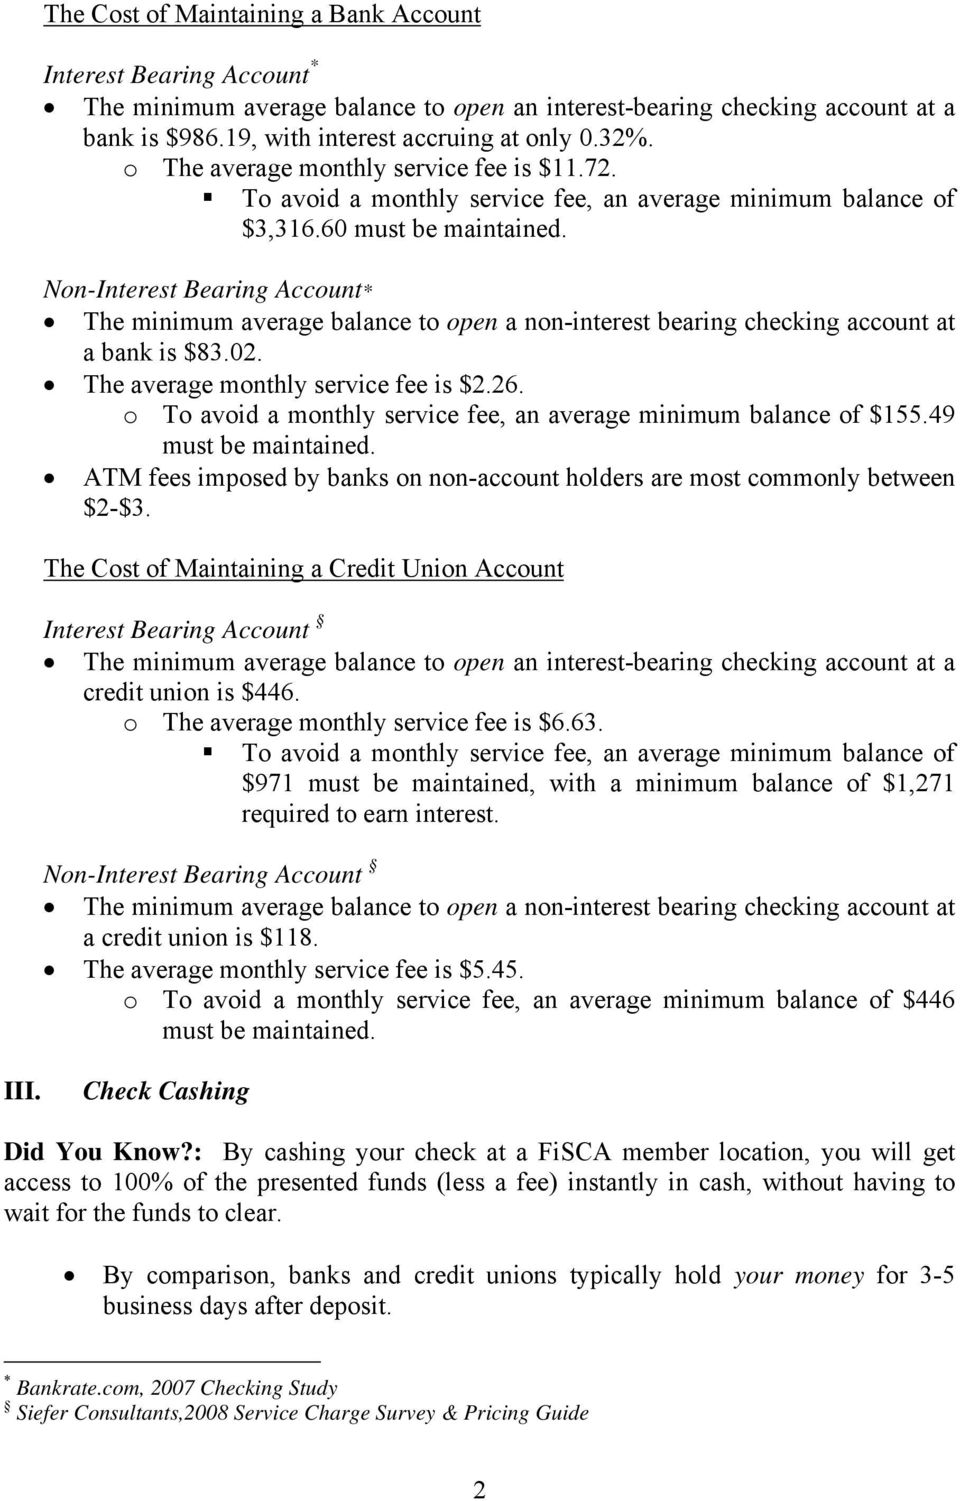 Non-Interest Bearing Account* The minimum average balance to open a non-interest bearing checking account at a bank is $83.02. The average monthly service fee is $2.26.